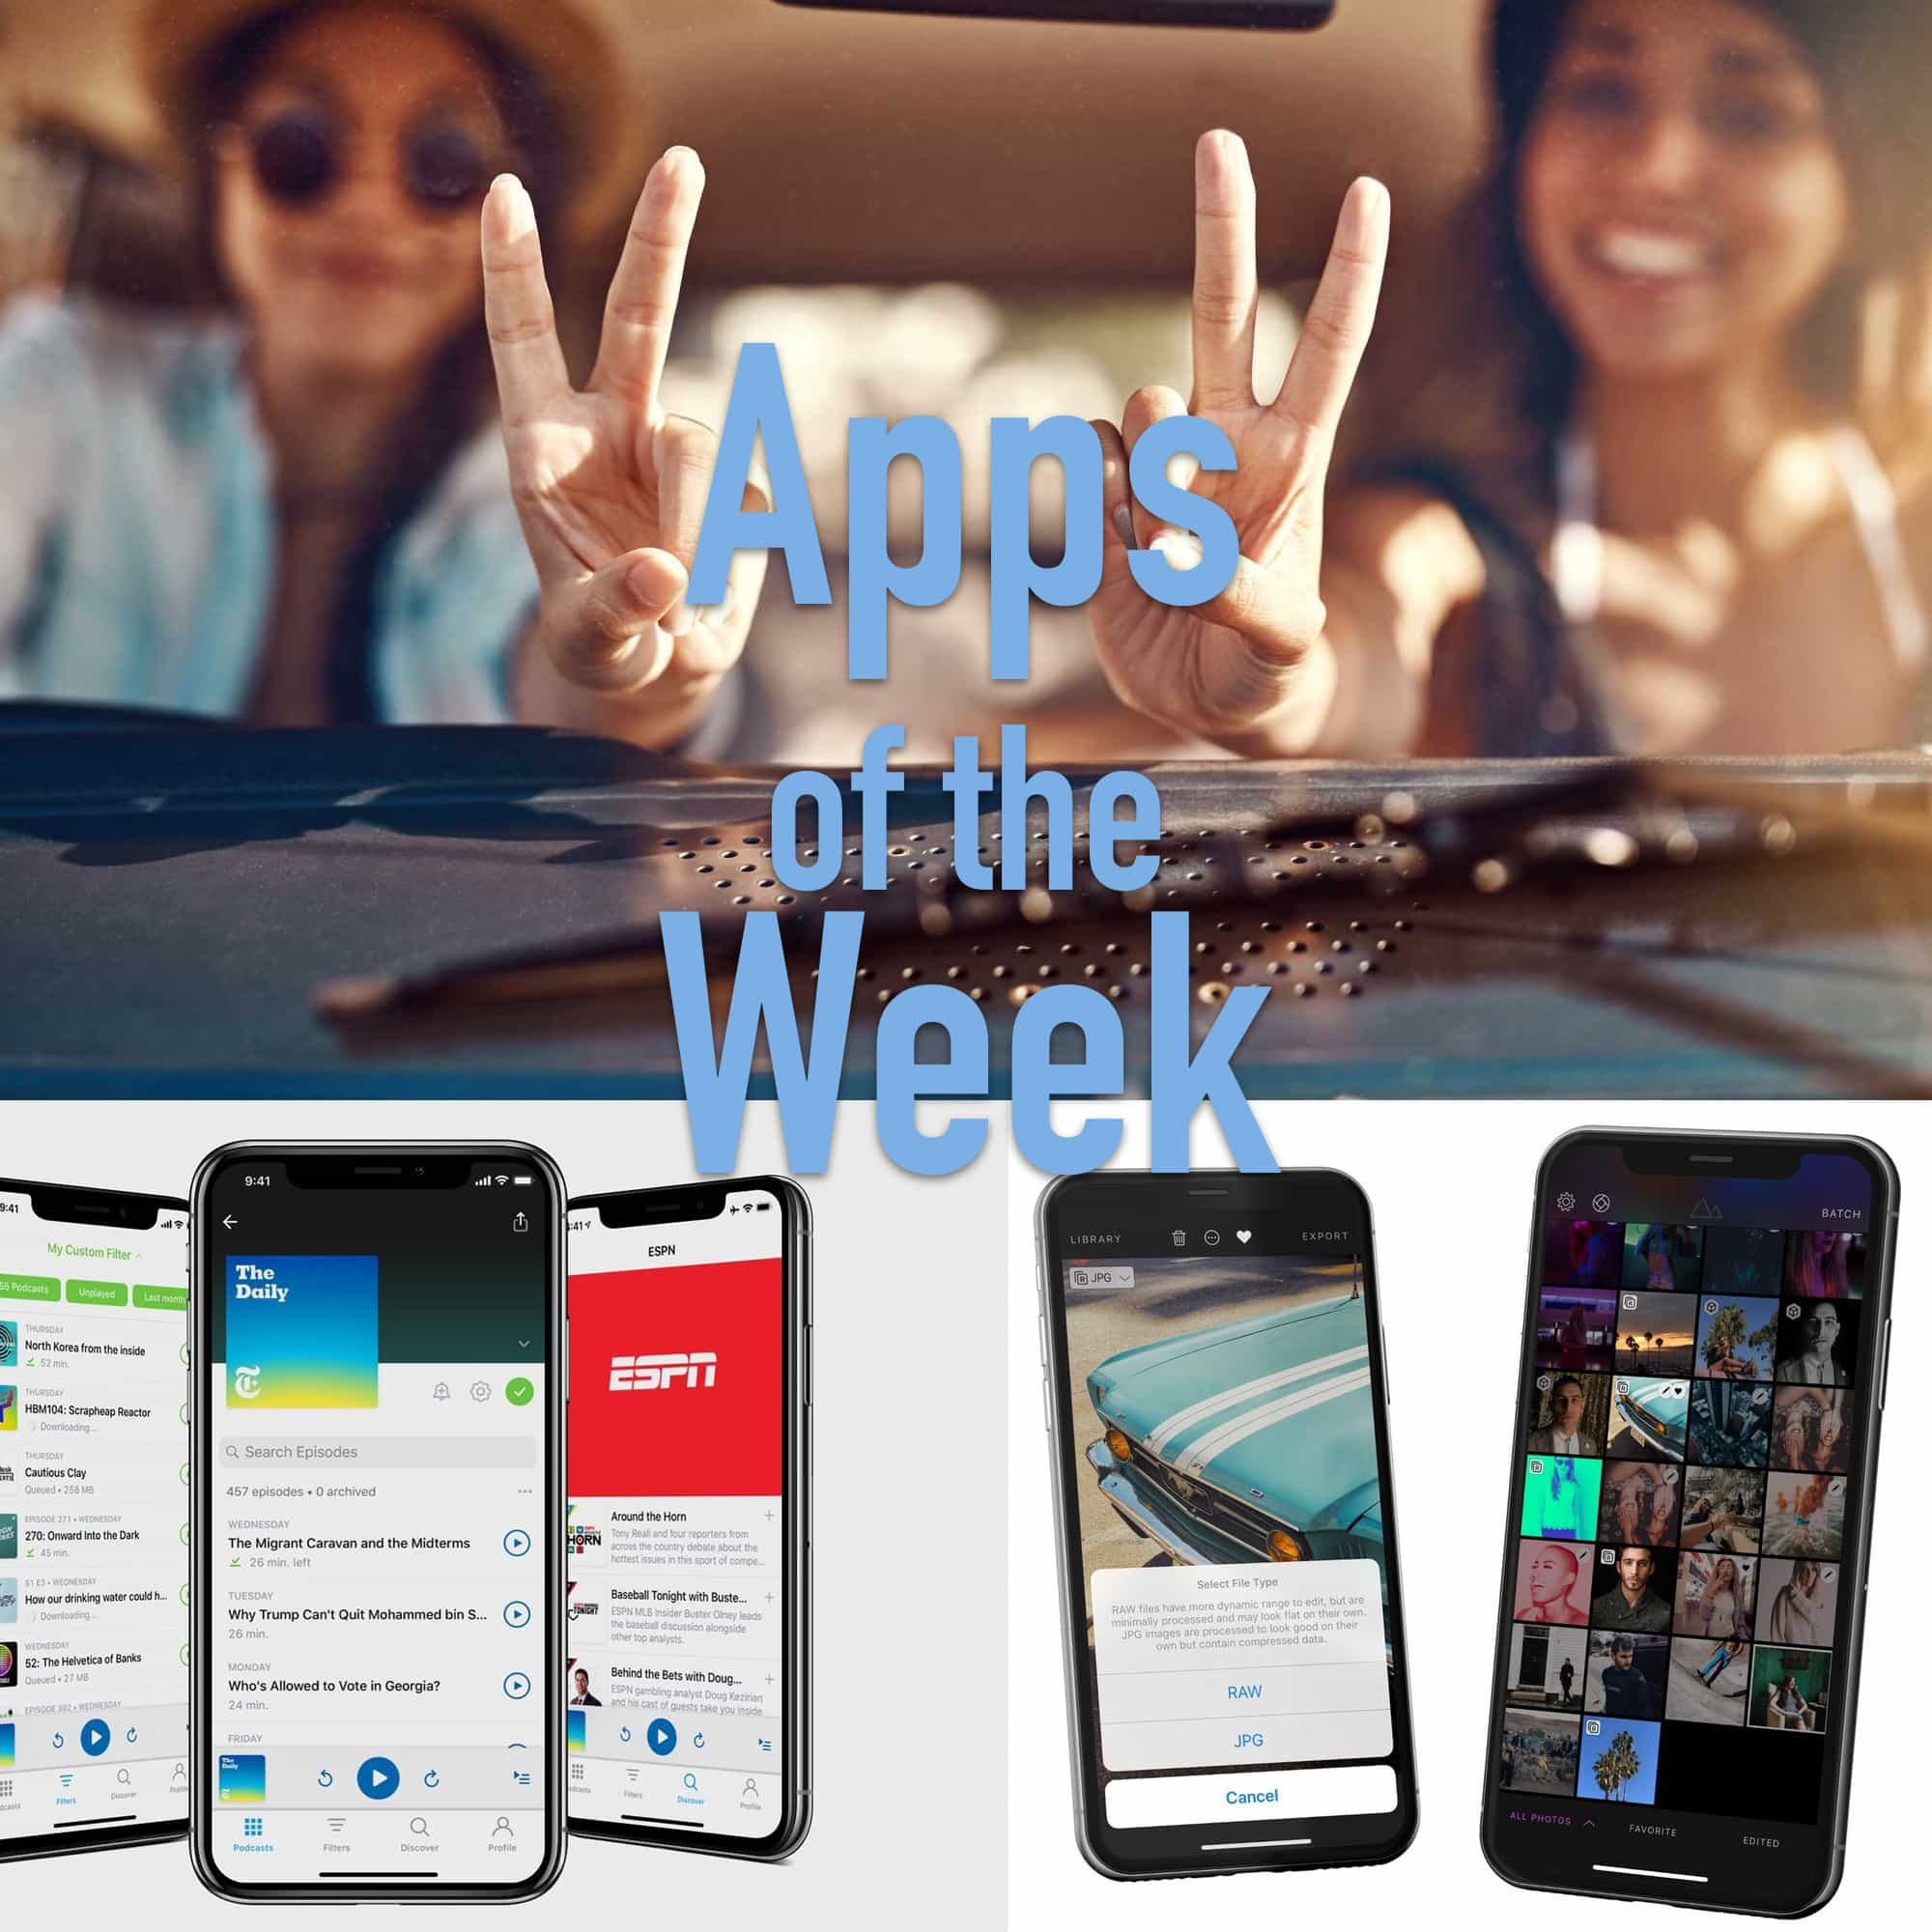 Check out this week's awesome app roundup